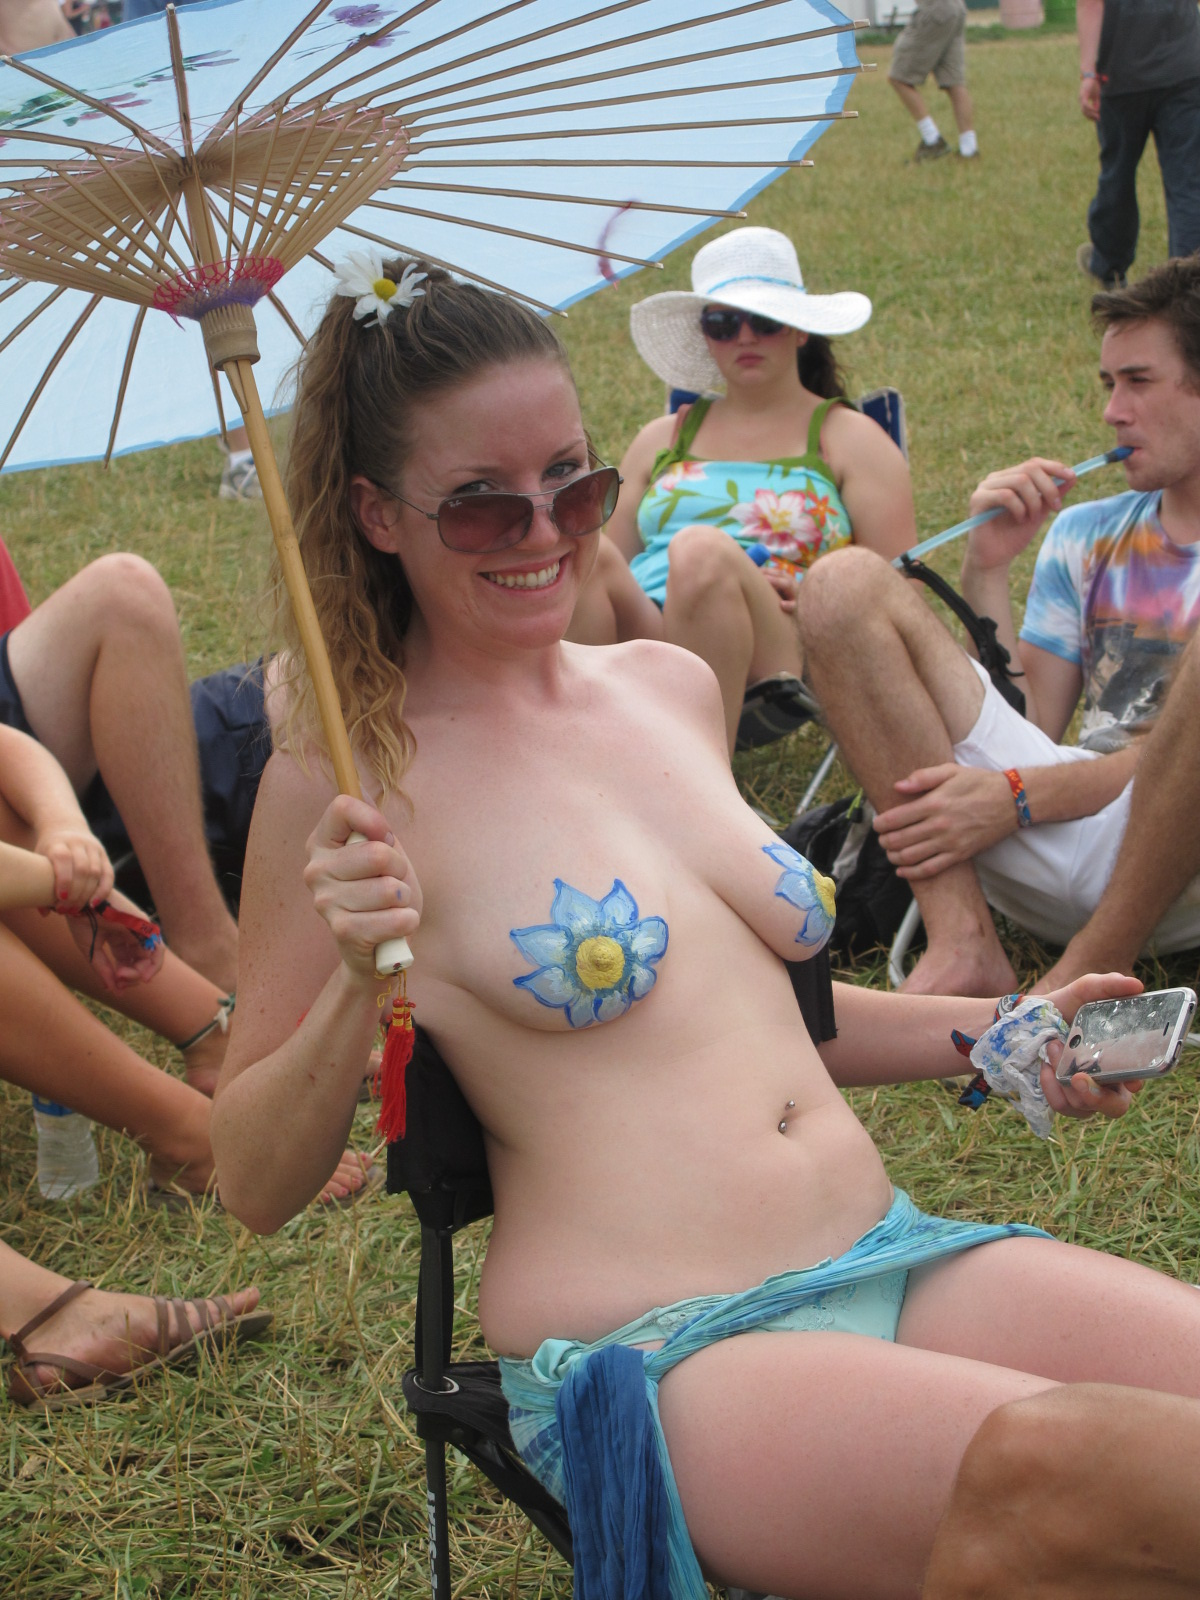 Topless bonnaroo video, amateur pussy gy style